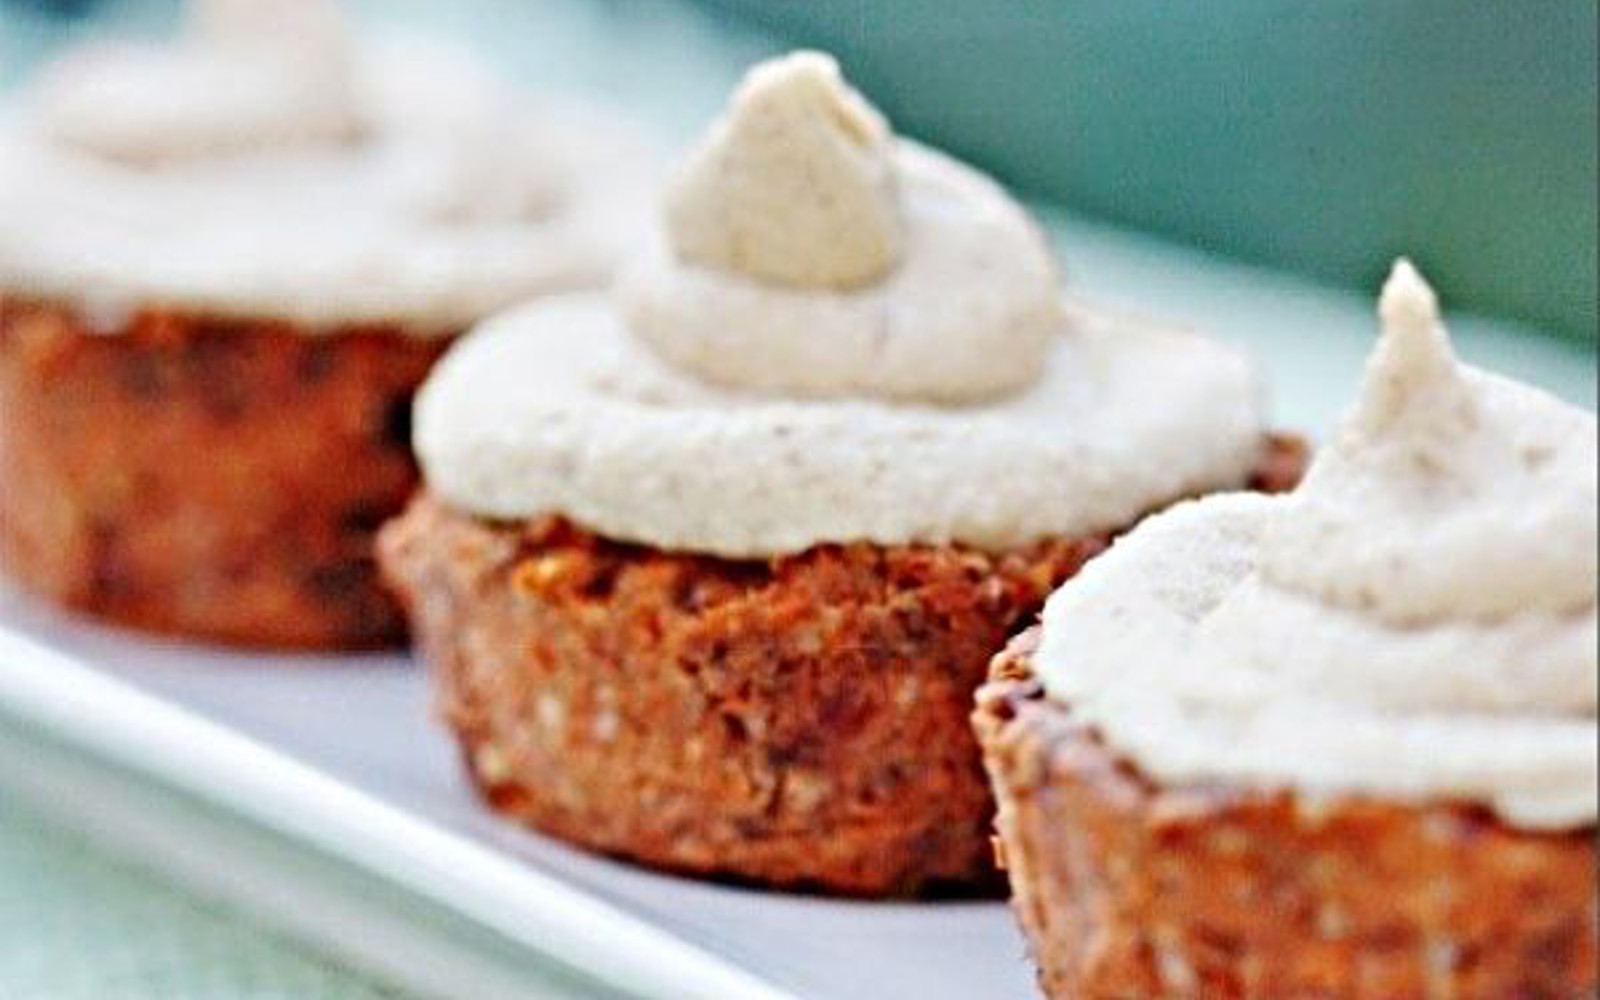 Raw Carrot Cake Cupcakes with Cream Cheese Frosting